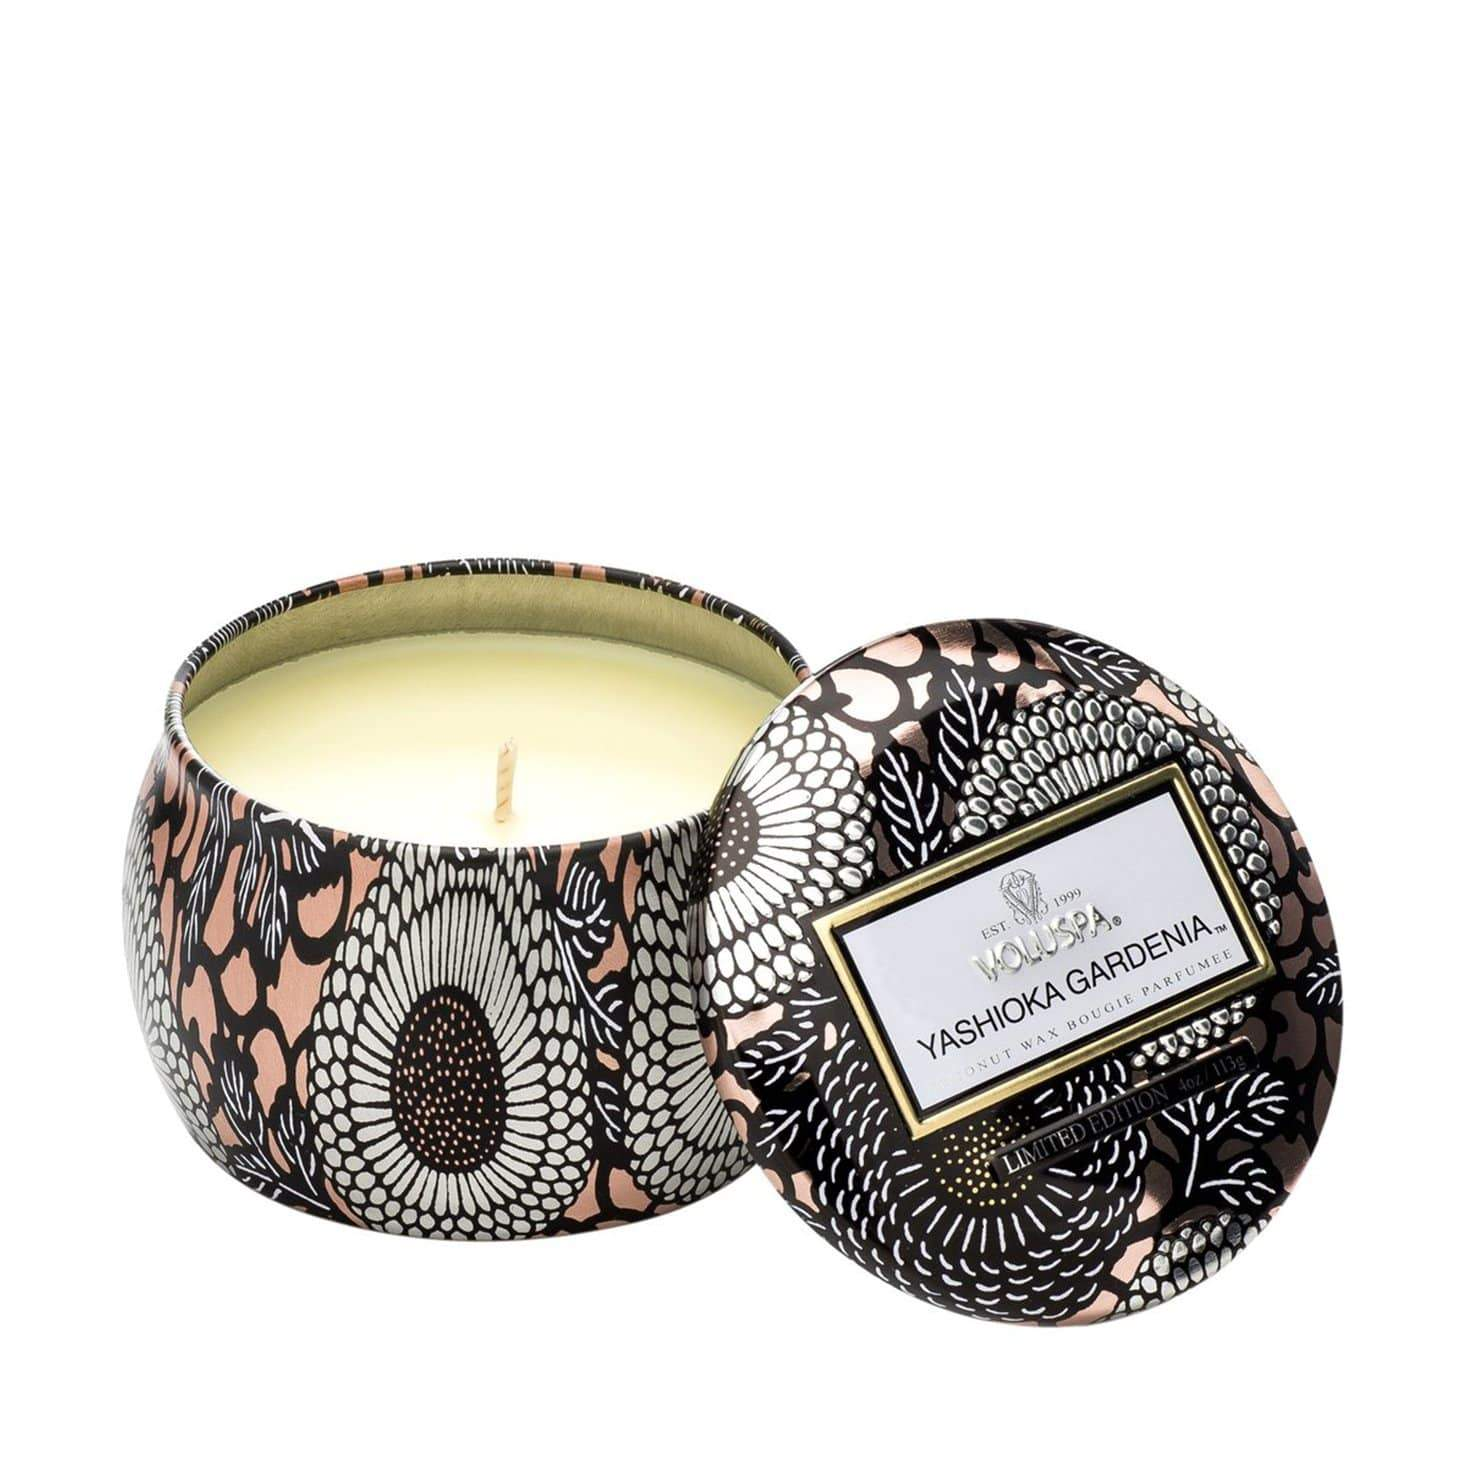 VOLUSPA Yashioka Gardenia Decorative Candle